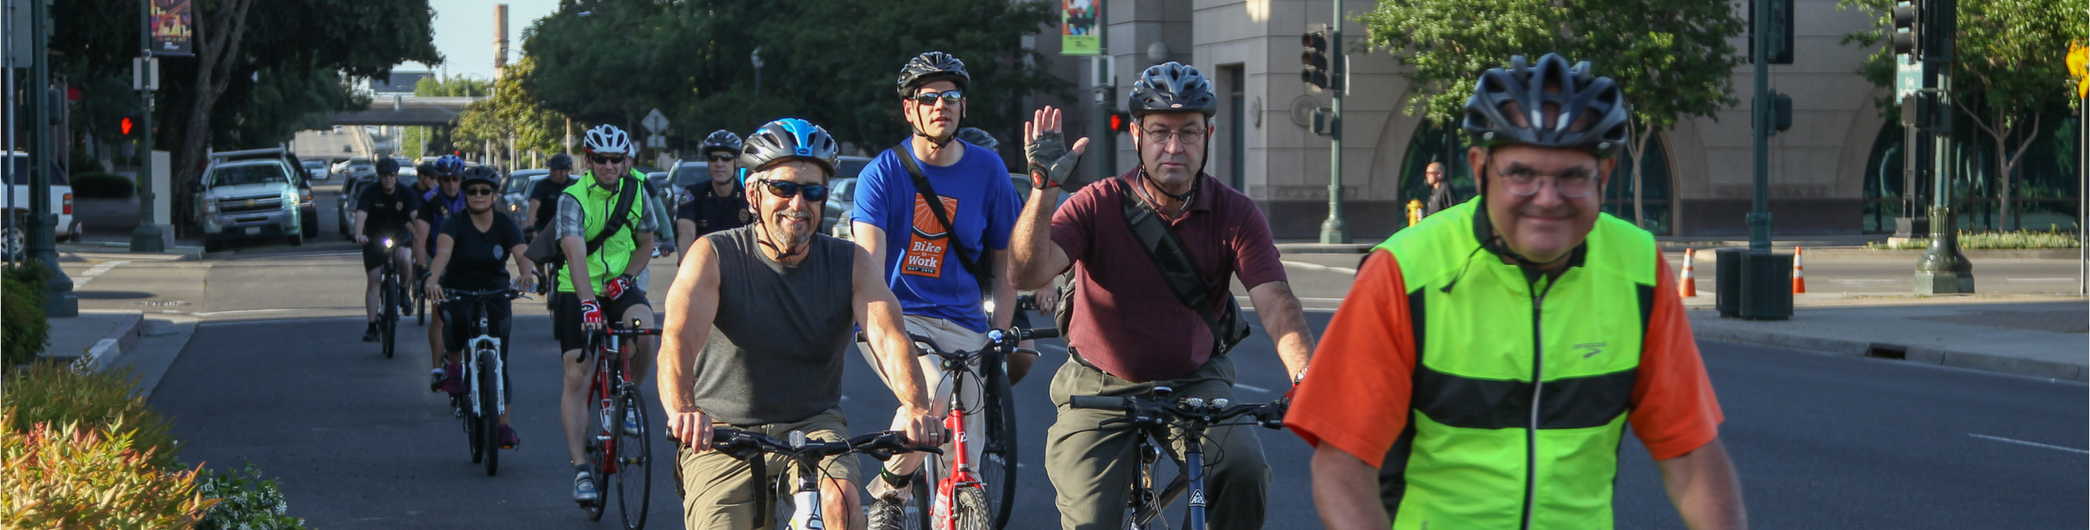 A group of bicyclists wave and smile as they ride during a bike to work event